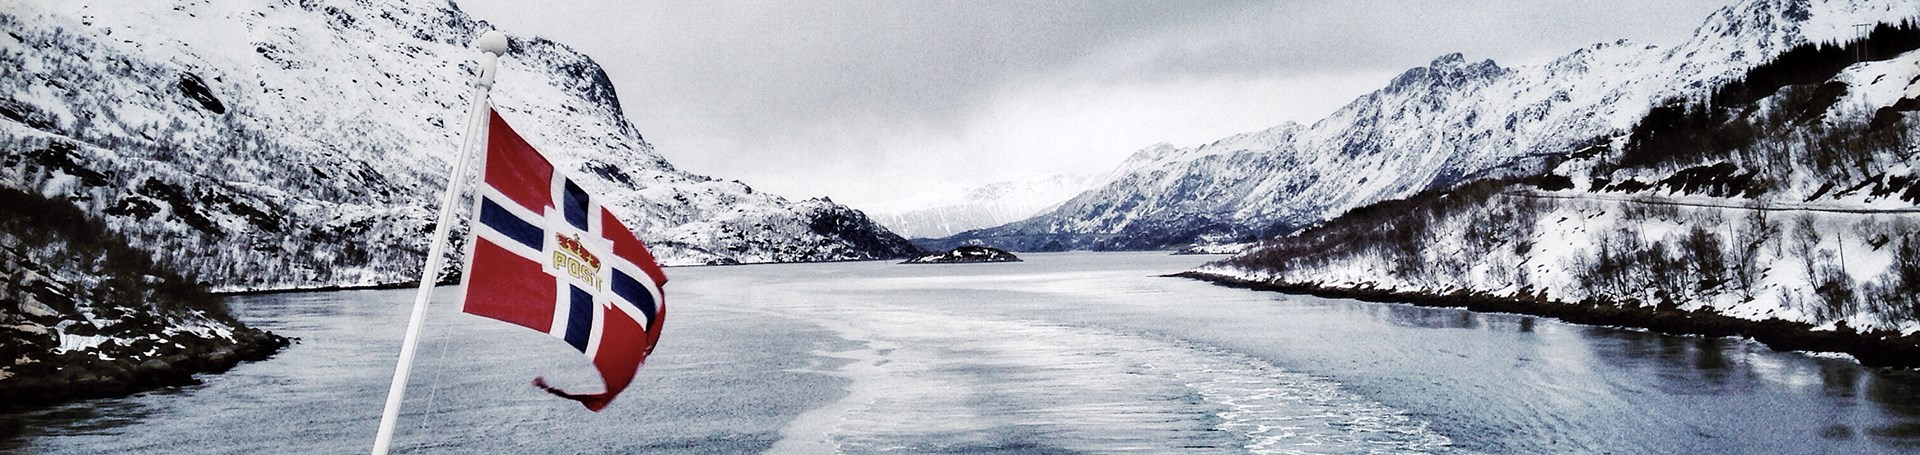 VP_VP_ALL_1920x455_1805_Landscape_Norway_Winter.jpg